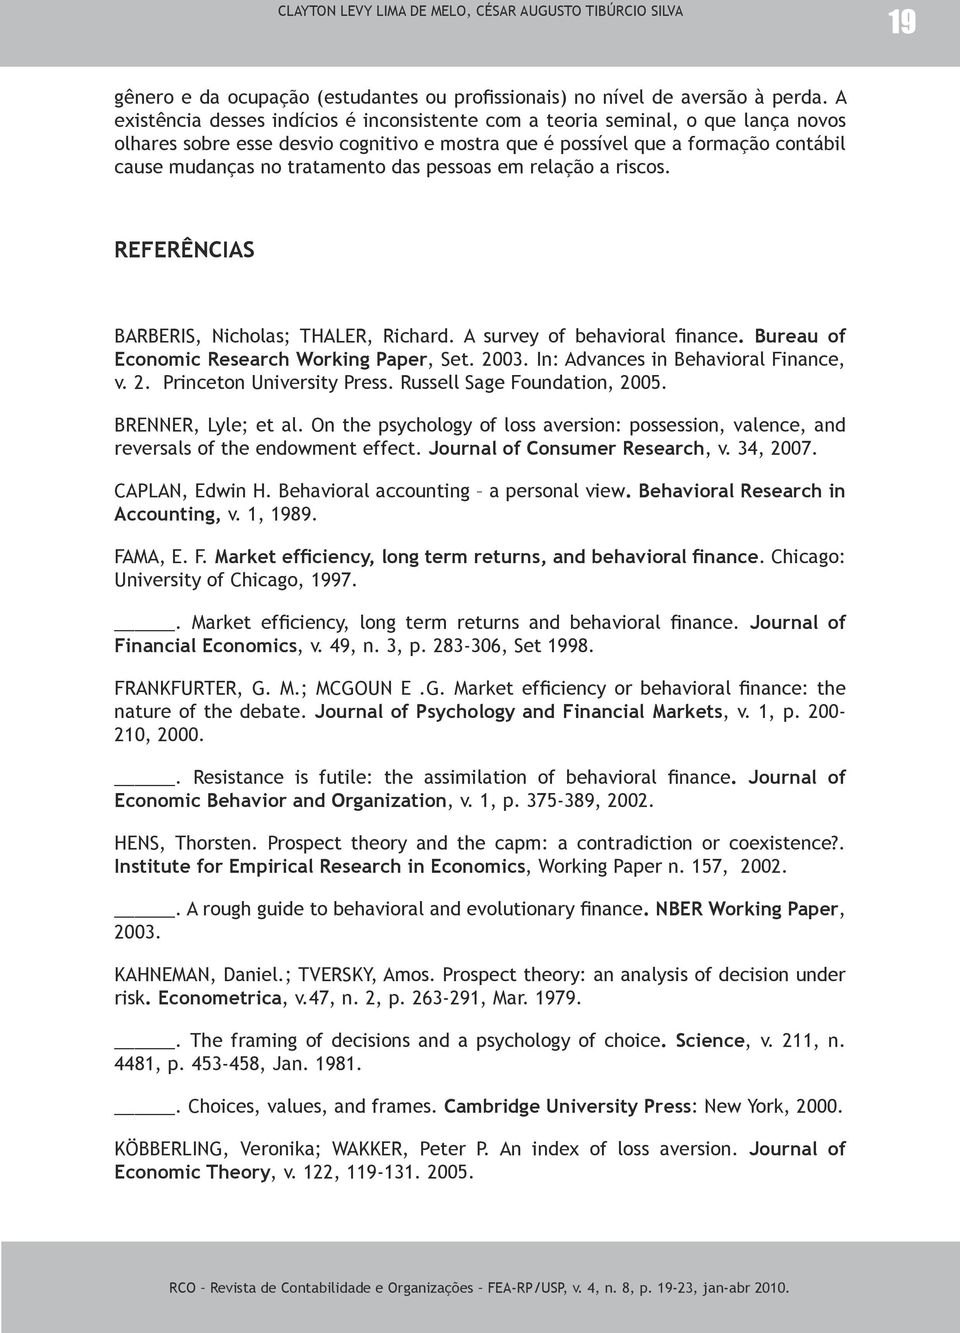 das pessoas em relação a riscos. REFERÊNCIAS BARBERIS, Nicholas; THALER, Richard. A survey of behavioral finance. Bureau of Economic Research Working Paper, Set. 2003.